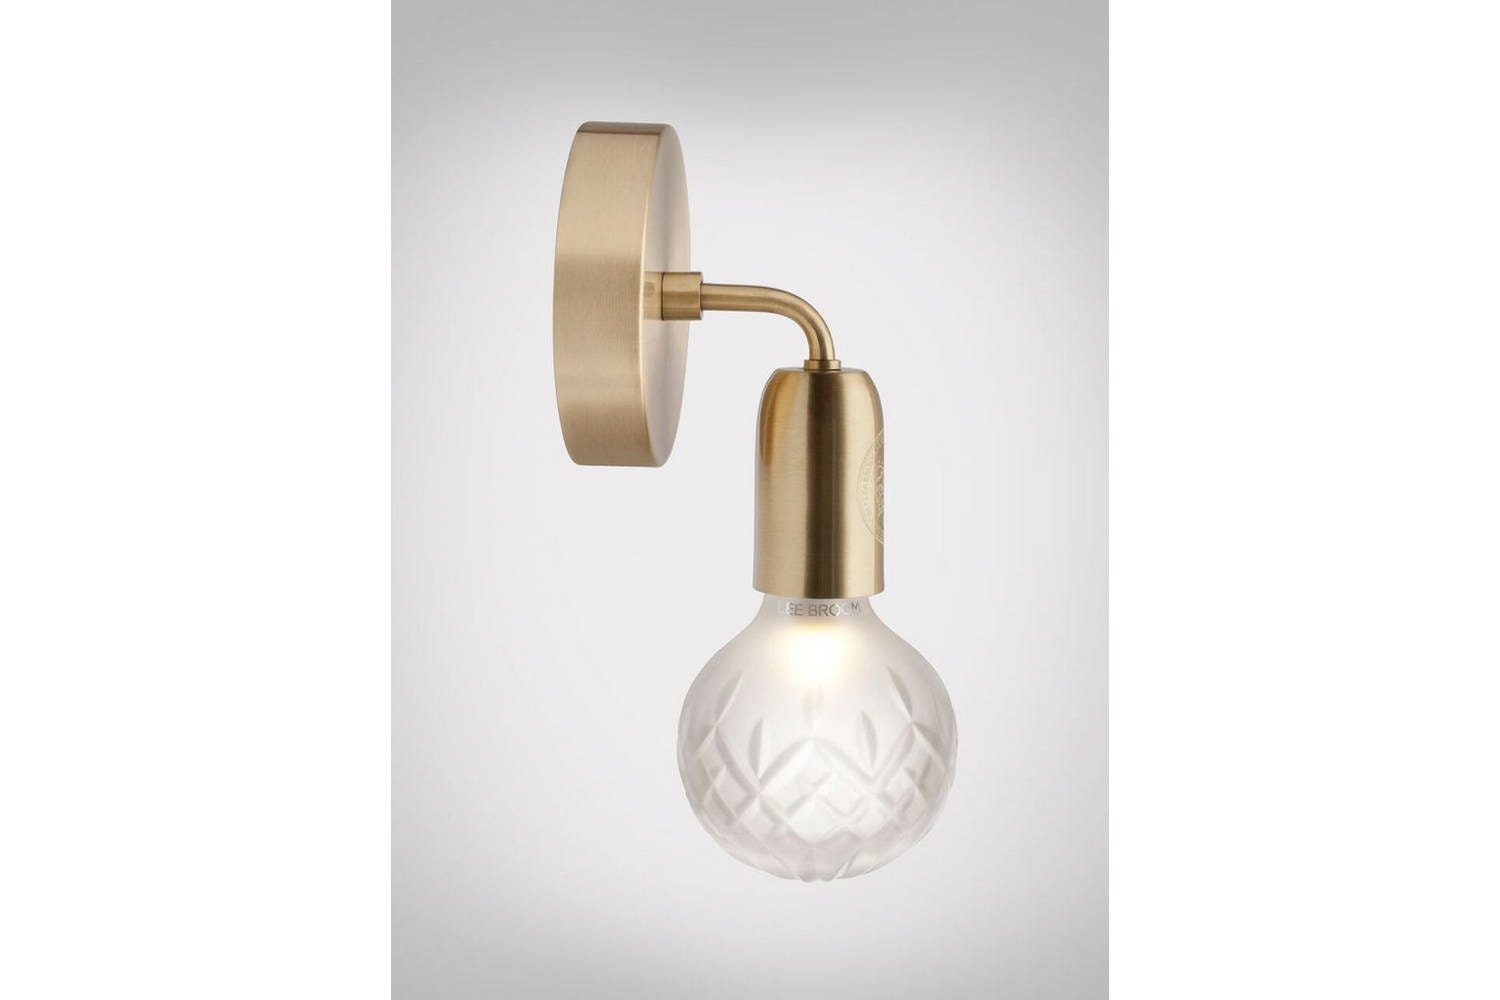 Frosted Crystal Bulb Wall Lamp - Brushed Brass by Lee Broom